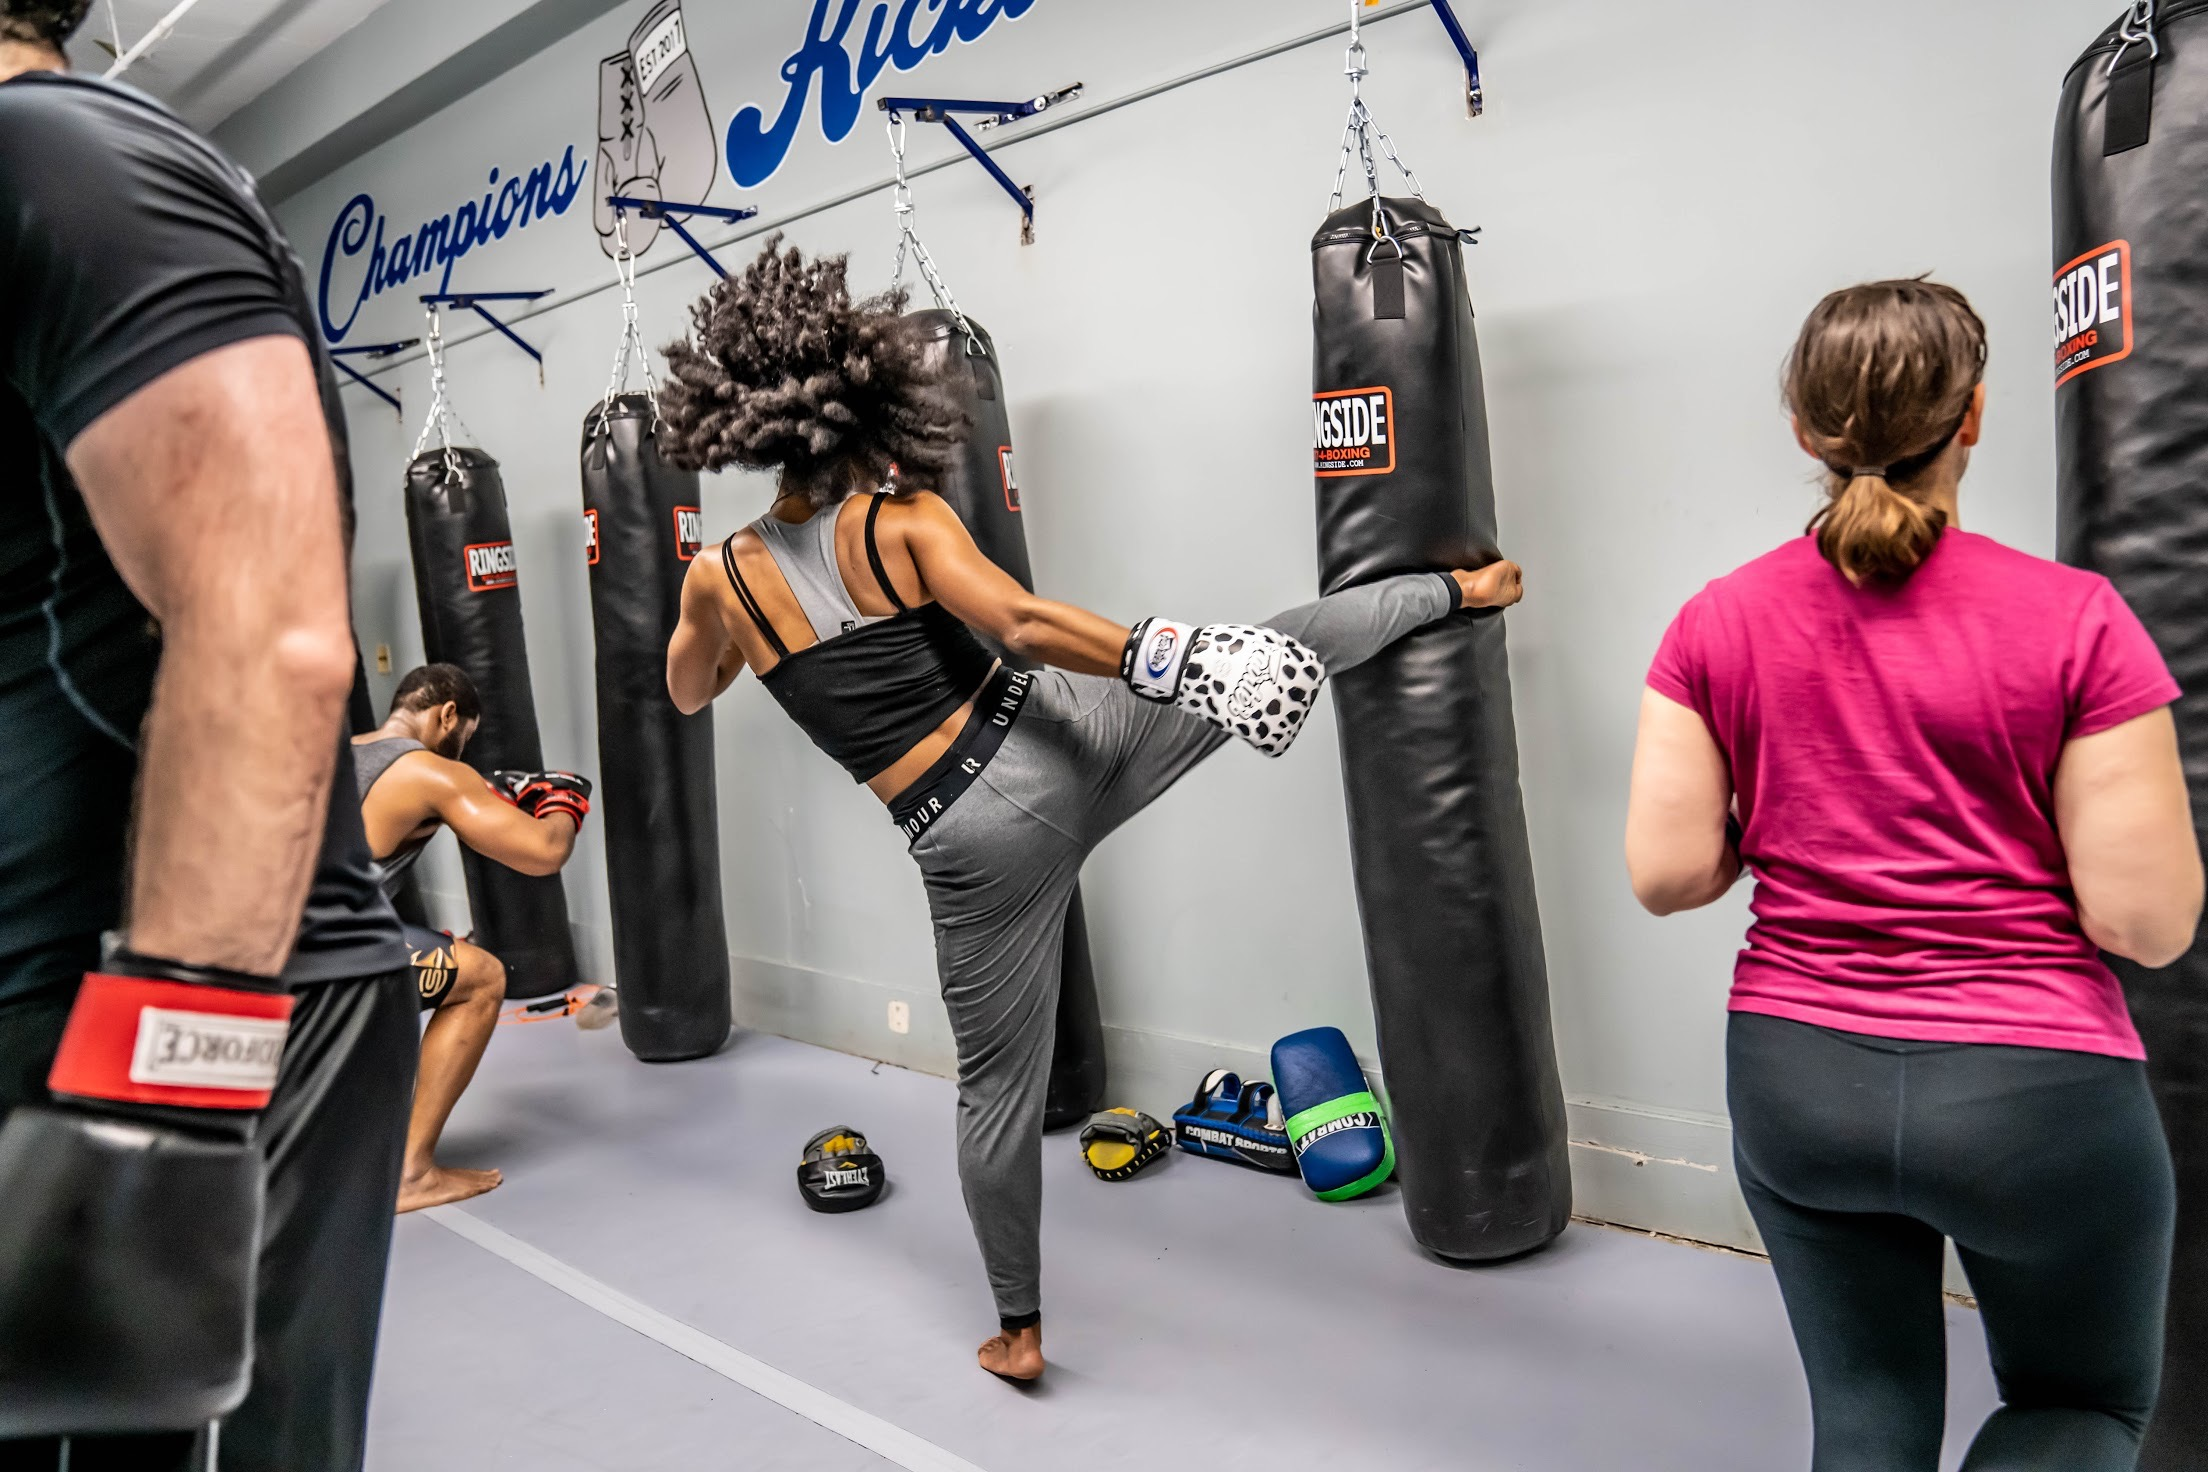 Every Mon-Fri - Kickboxing and Boxing Cardio Classes